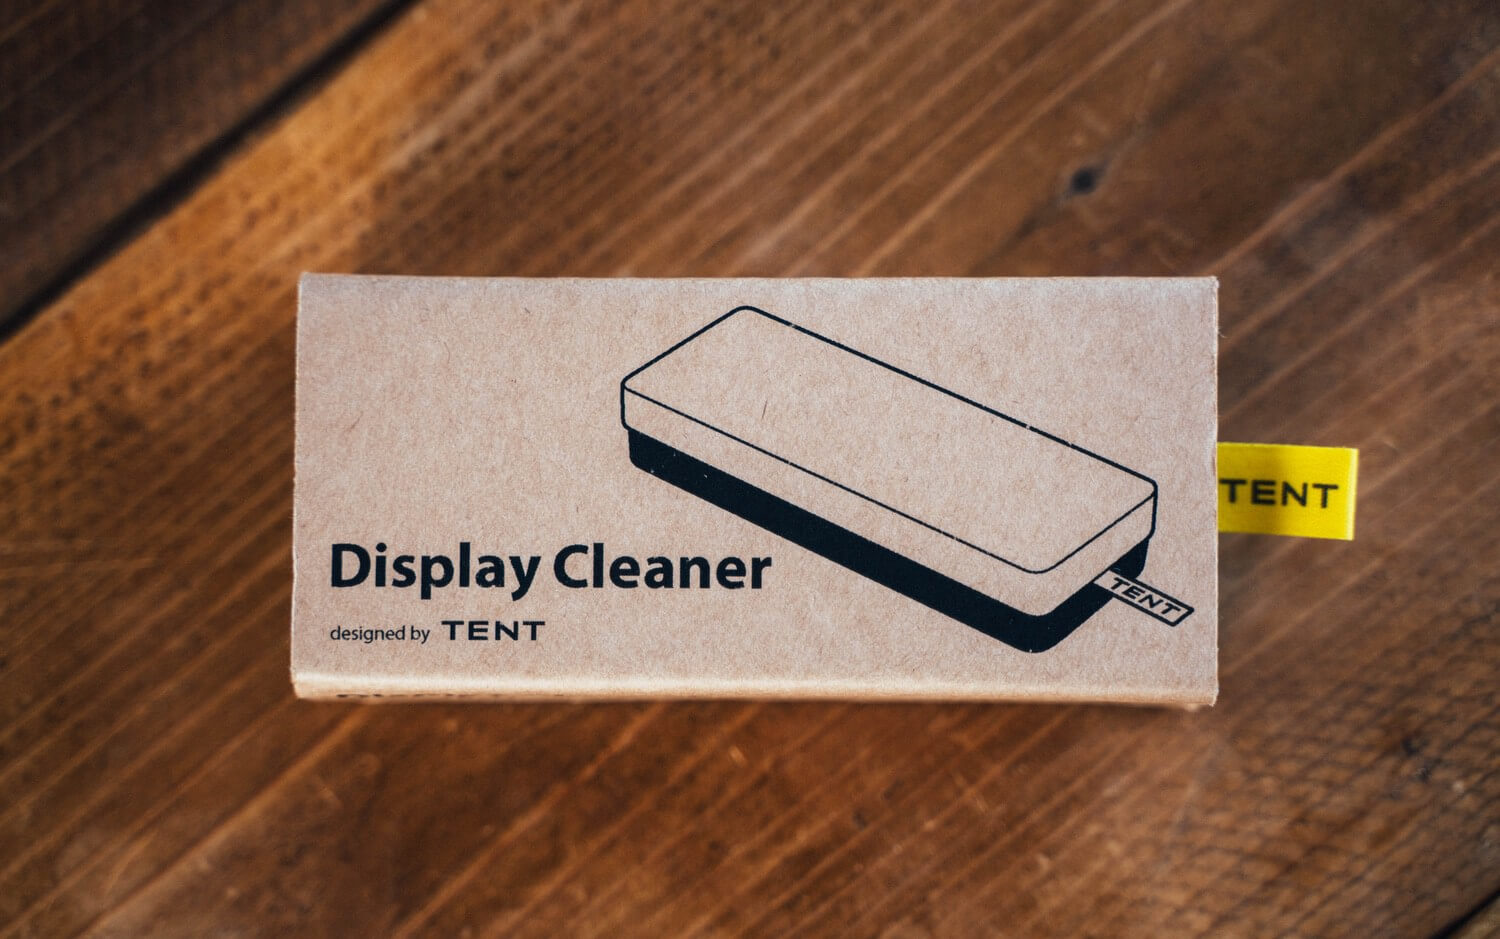 Display cleaner tent 0002